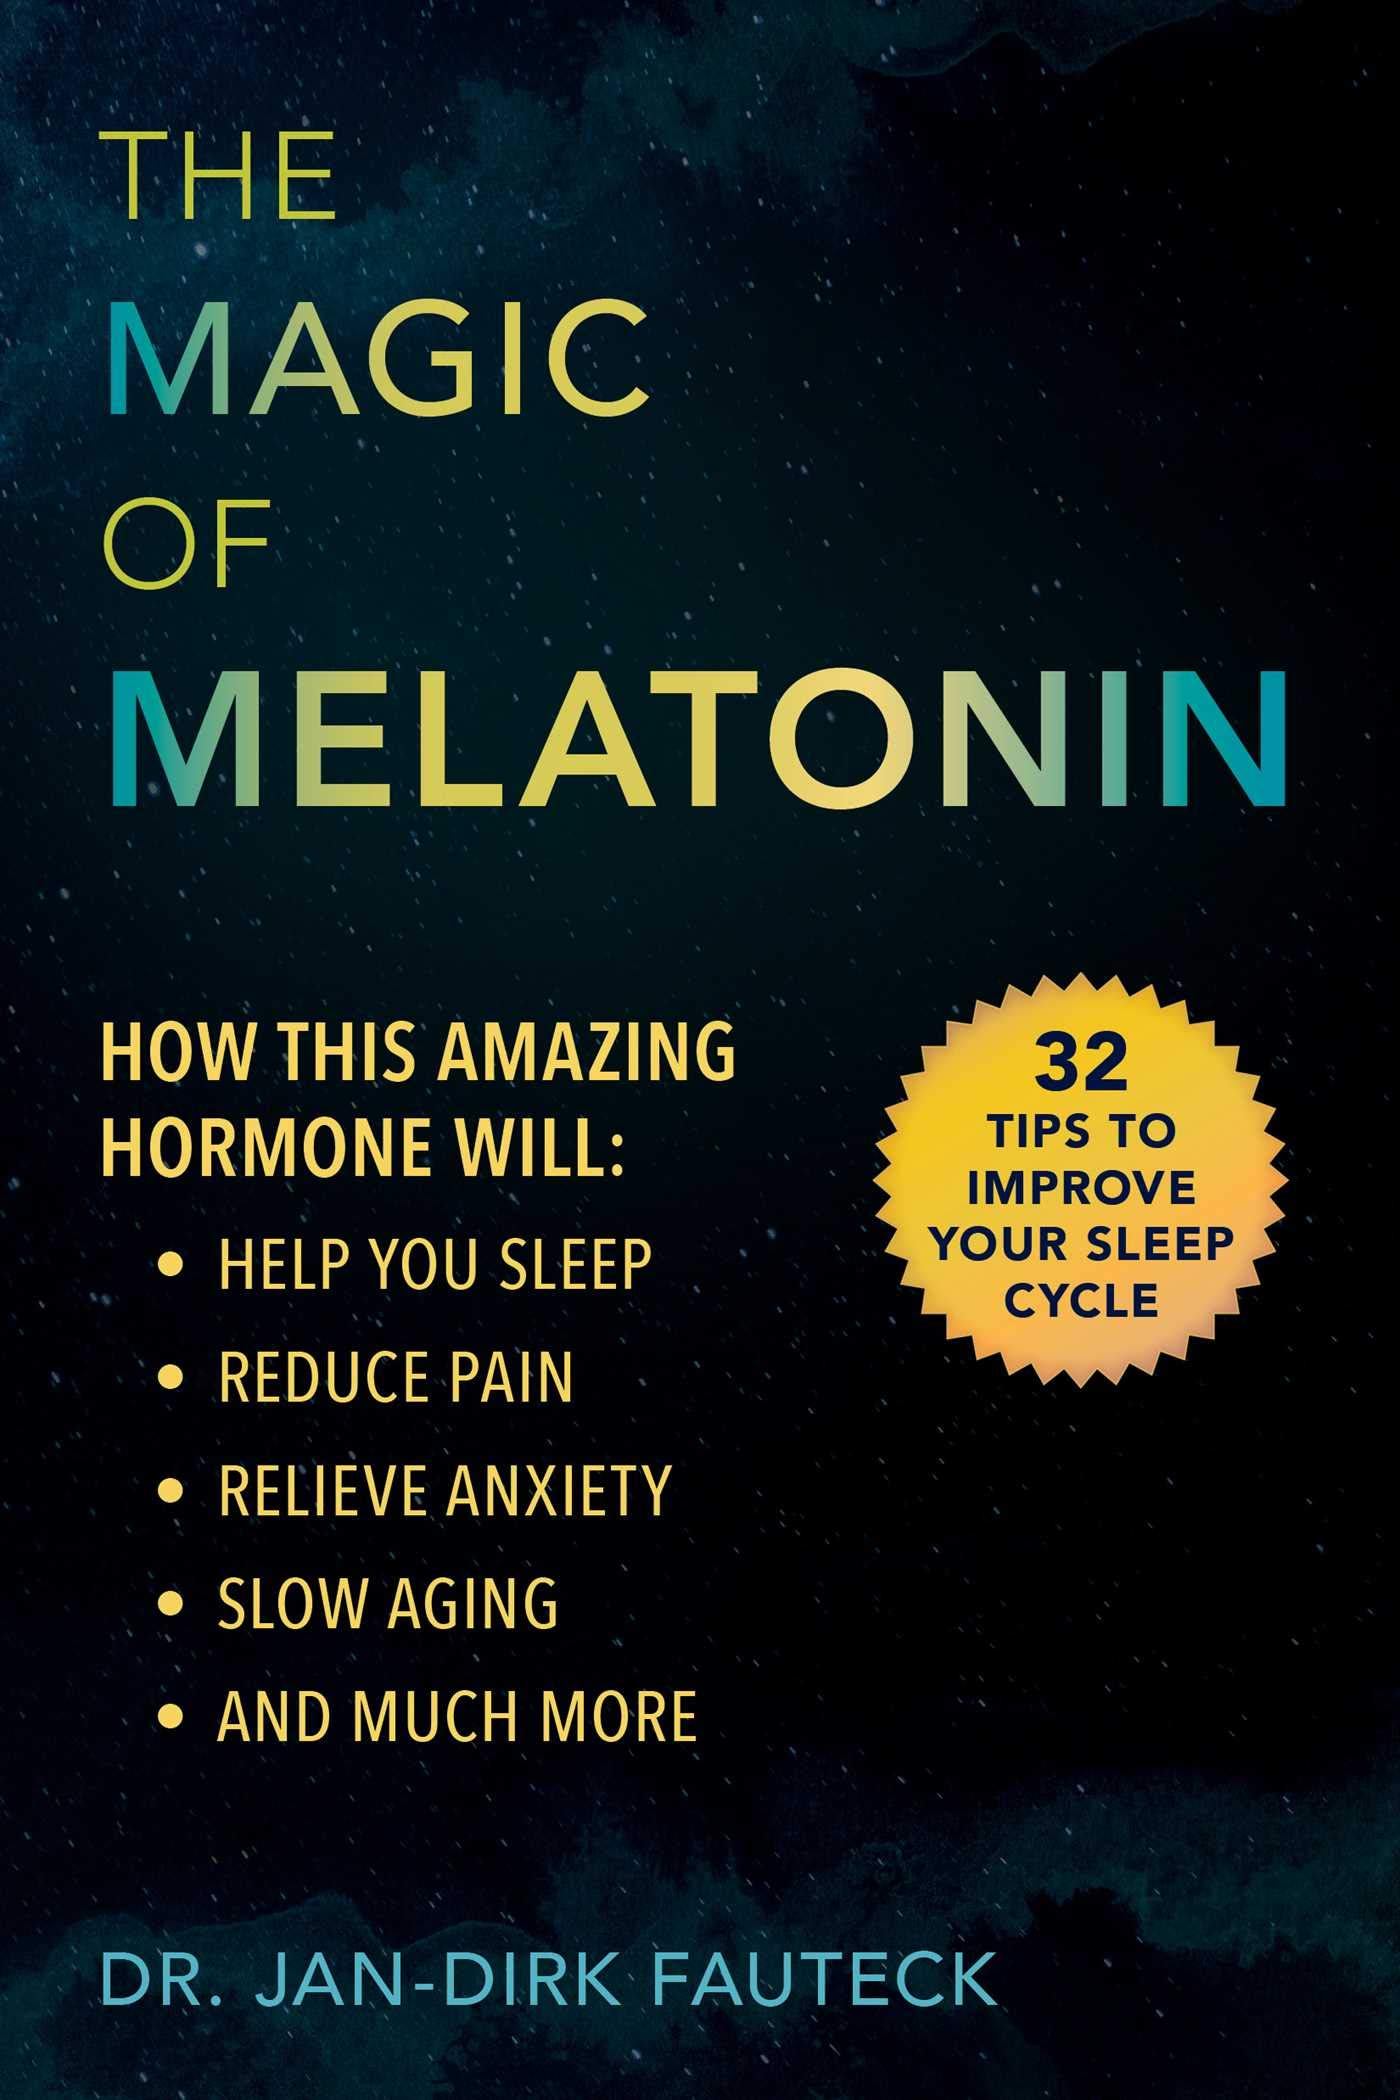 The Magic Of Melatonin  How This Amazing Hormone Will Help You Sleep Reduce Pain Relieve Anxiety Slow Aging And Much More